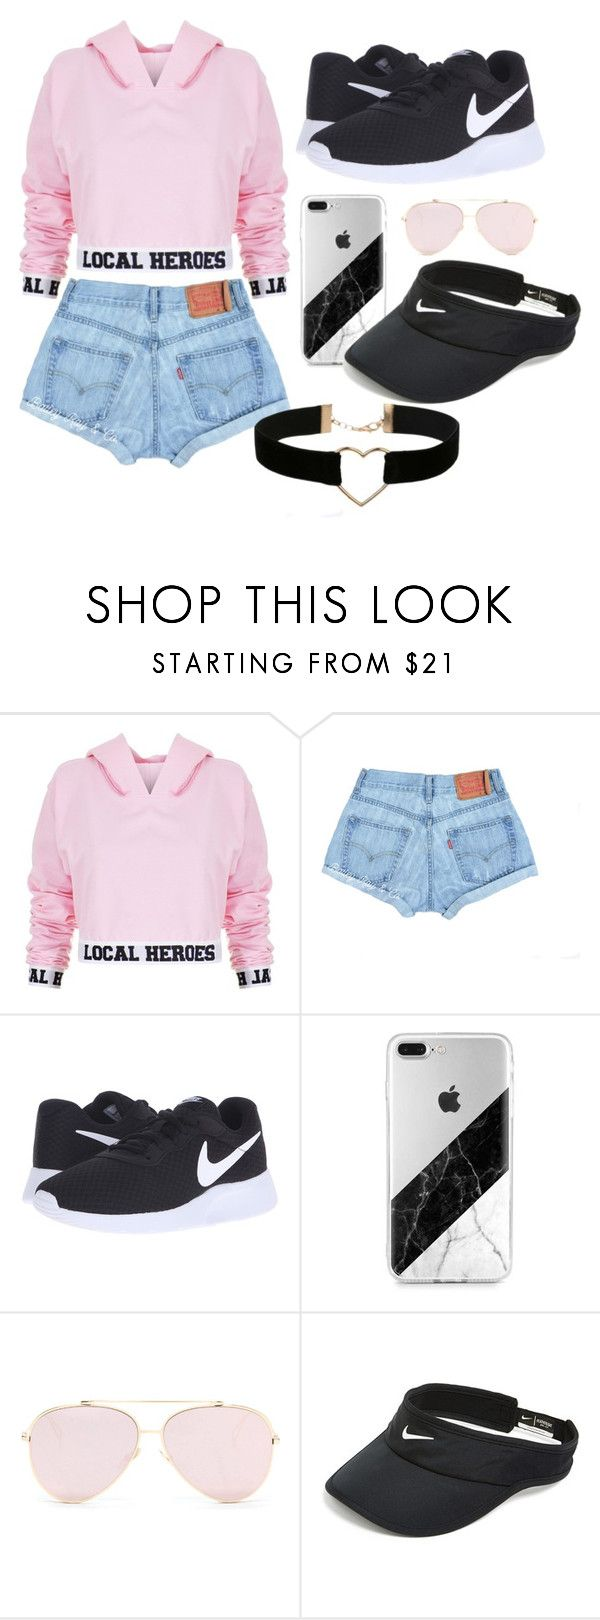 """first one"" by itzhema ❤ liked on Polyvore featuring Local Heroes, NIKE and Miss Selfridge"